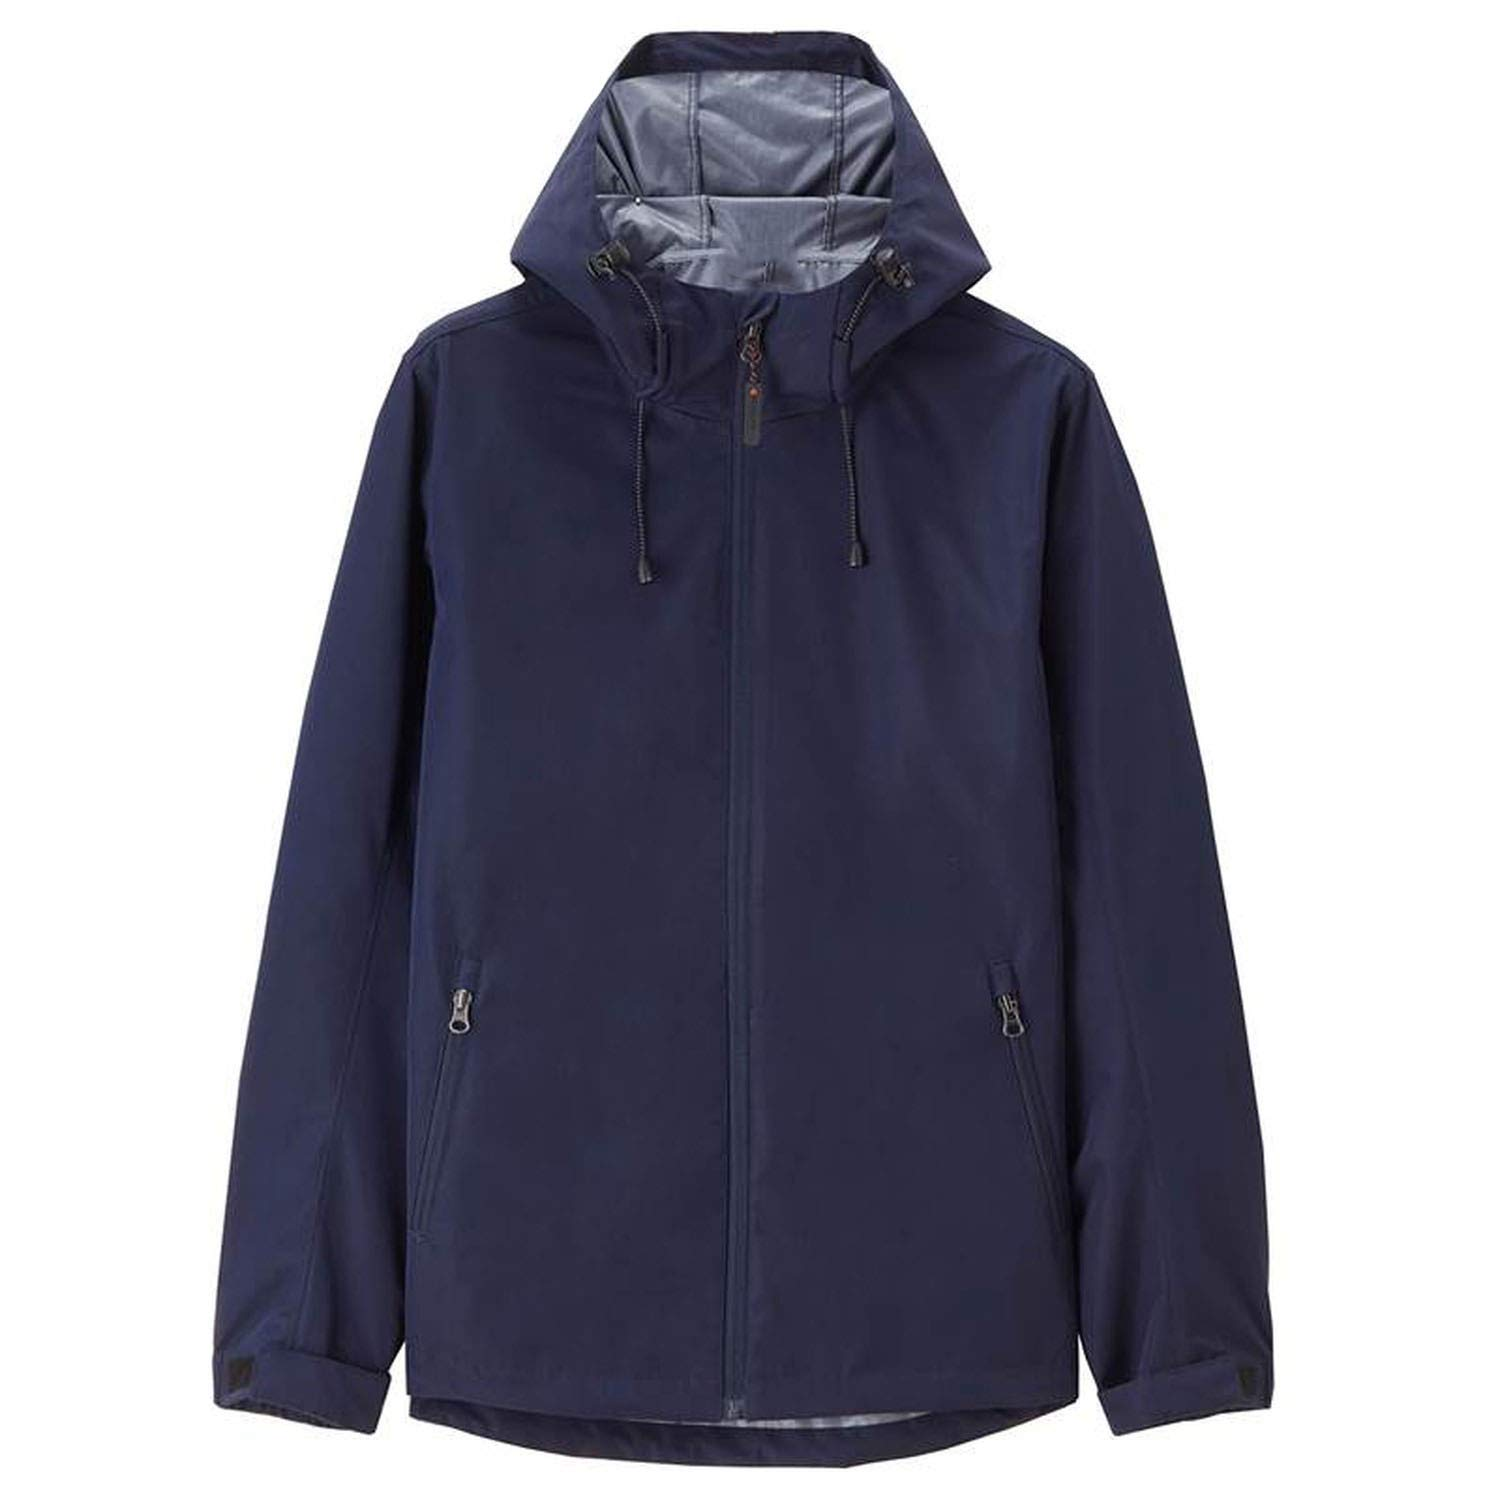 black-shop Men Jacket Solid Hood Windbreaker Drawstring Hood ...